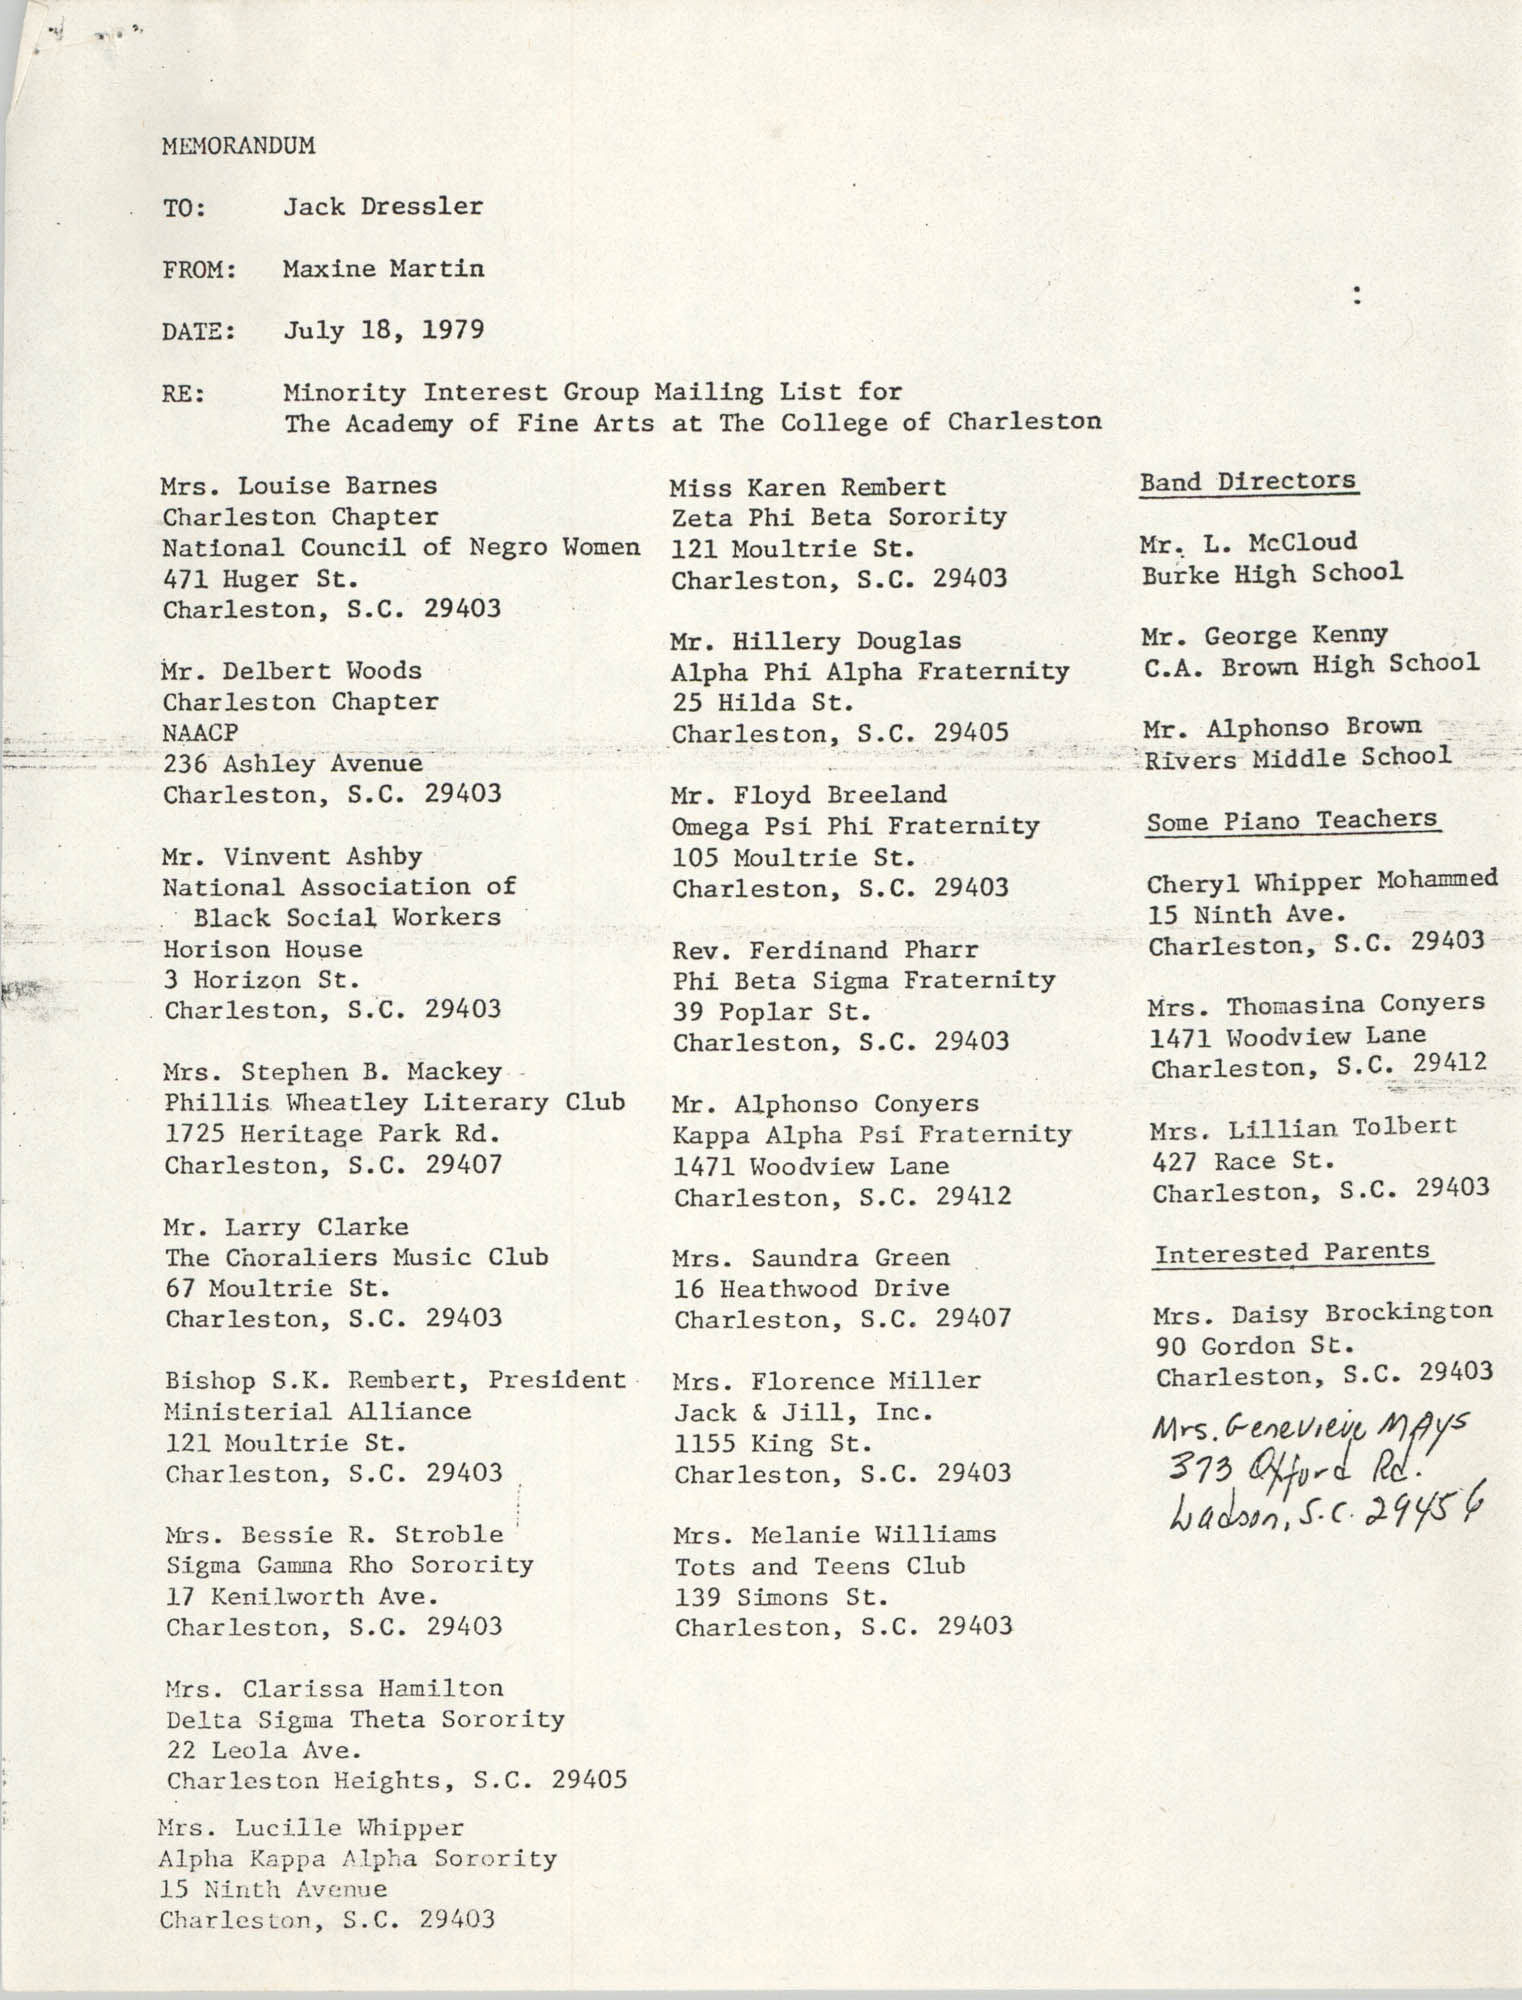 Memorandum, July 18, 1979, Page 1